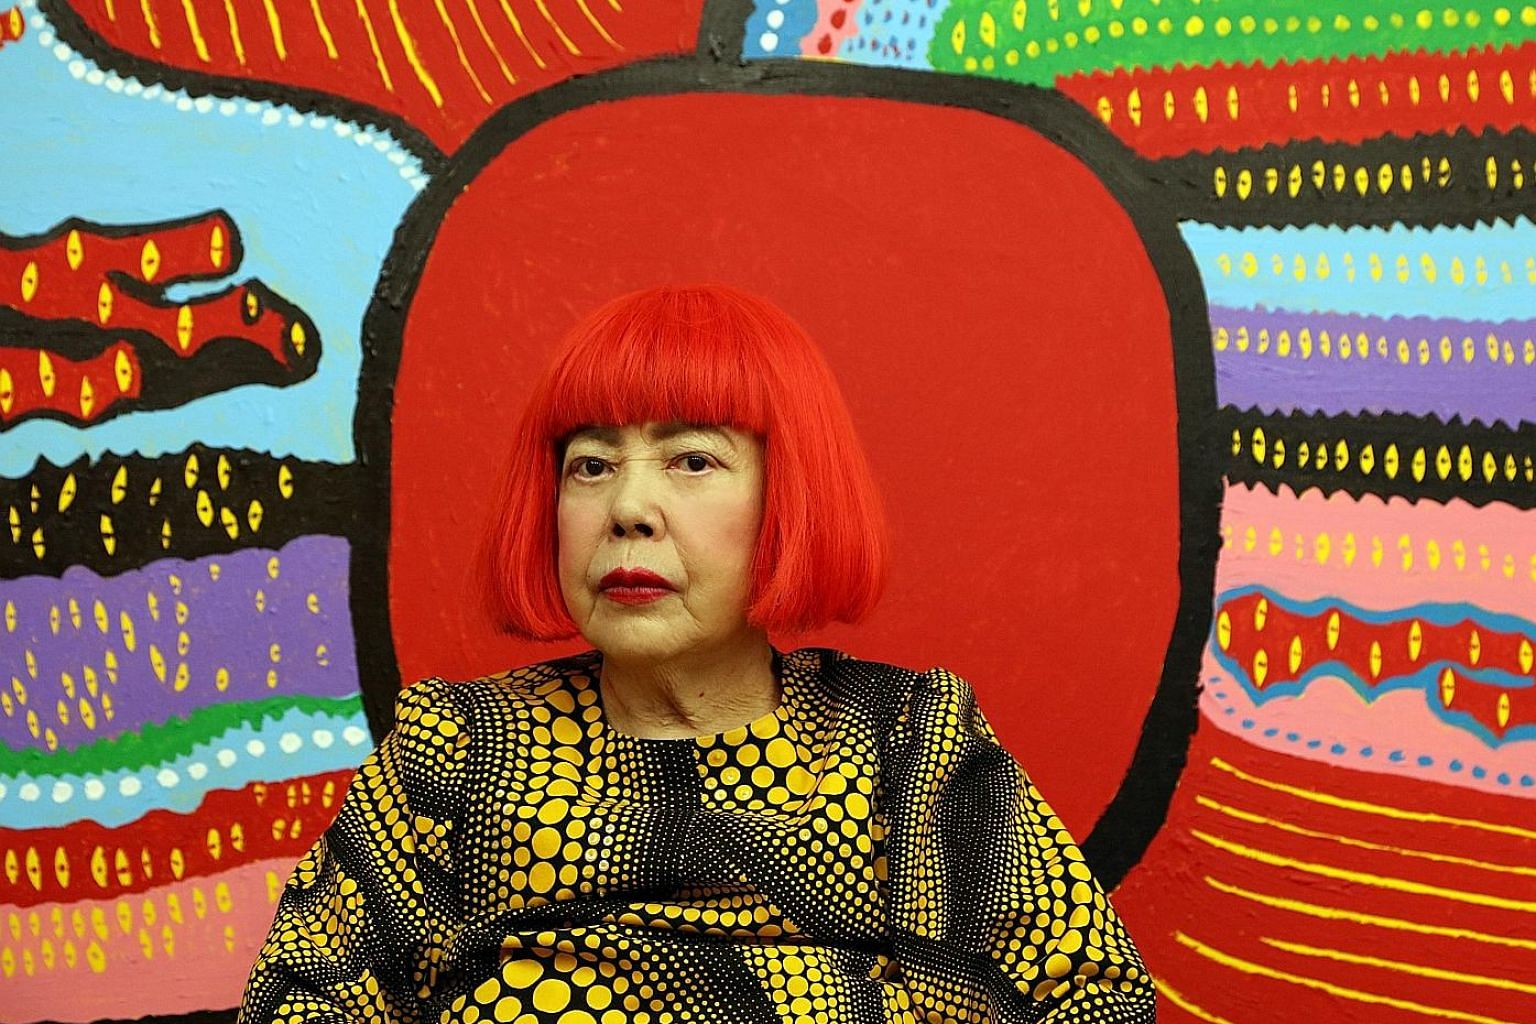 Yayoi Kusama in front of her latest work, Life Is The Heart Of A Rainbow, which will be on display at the National Gallery Singapore exhibition.